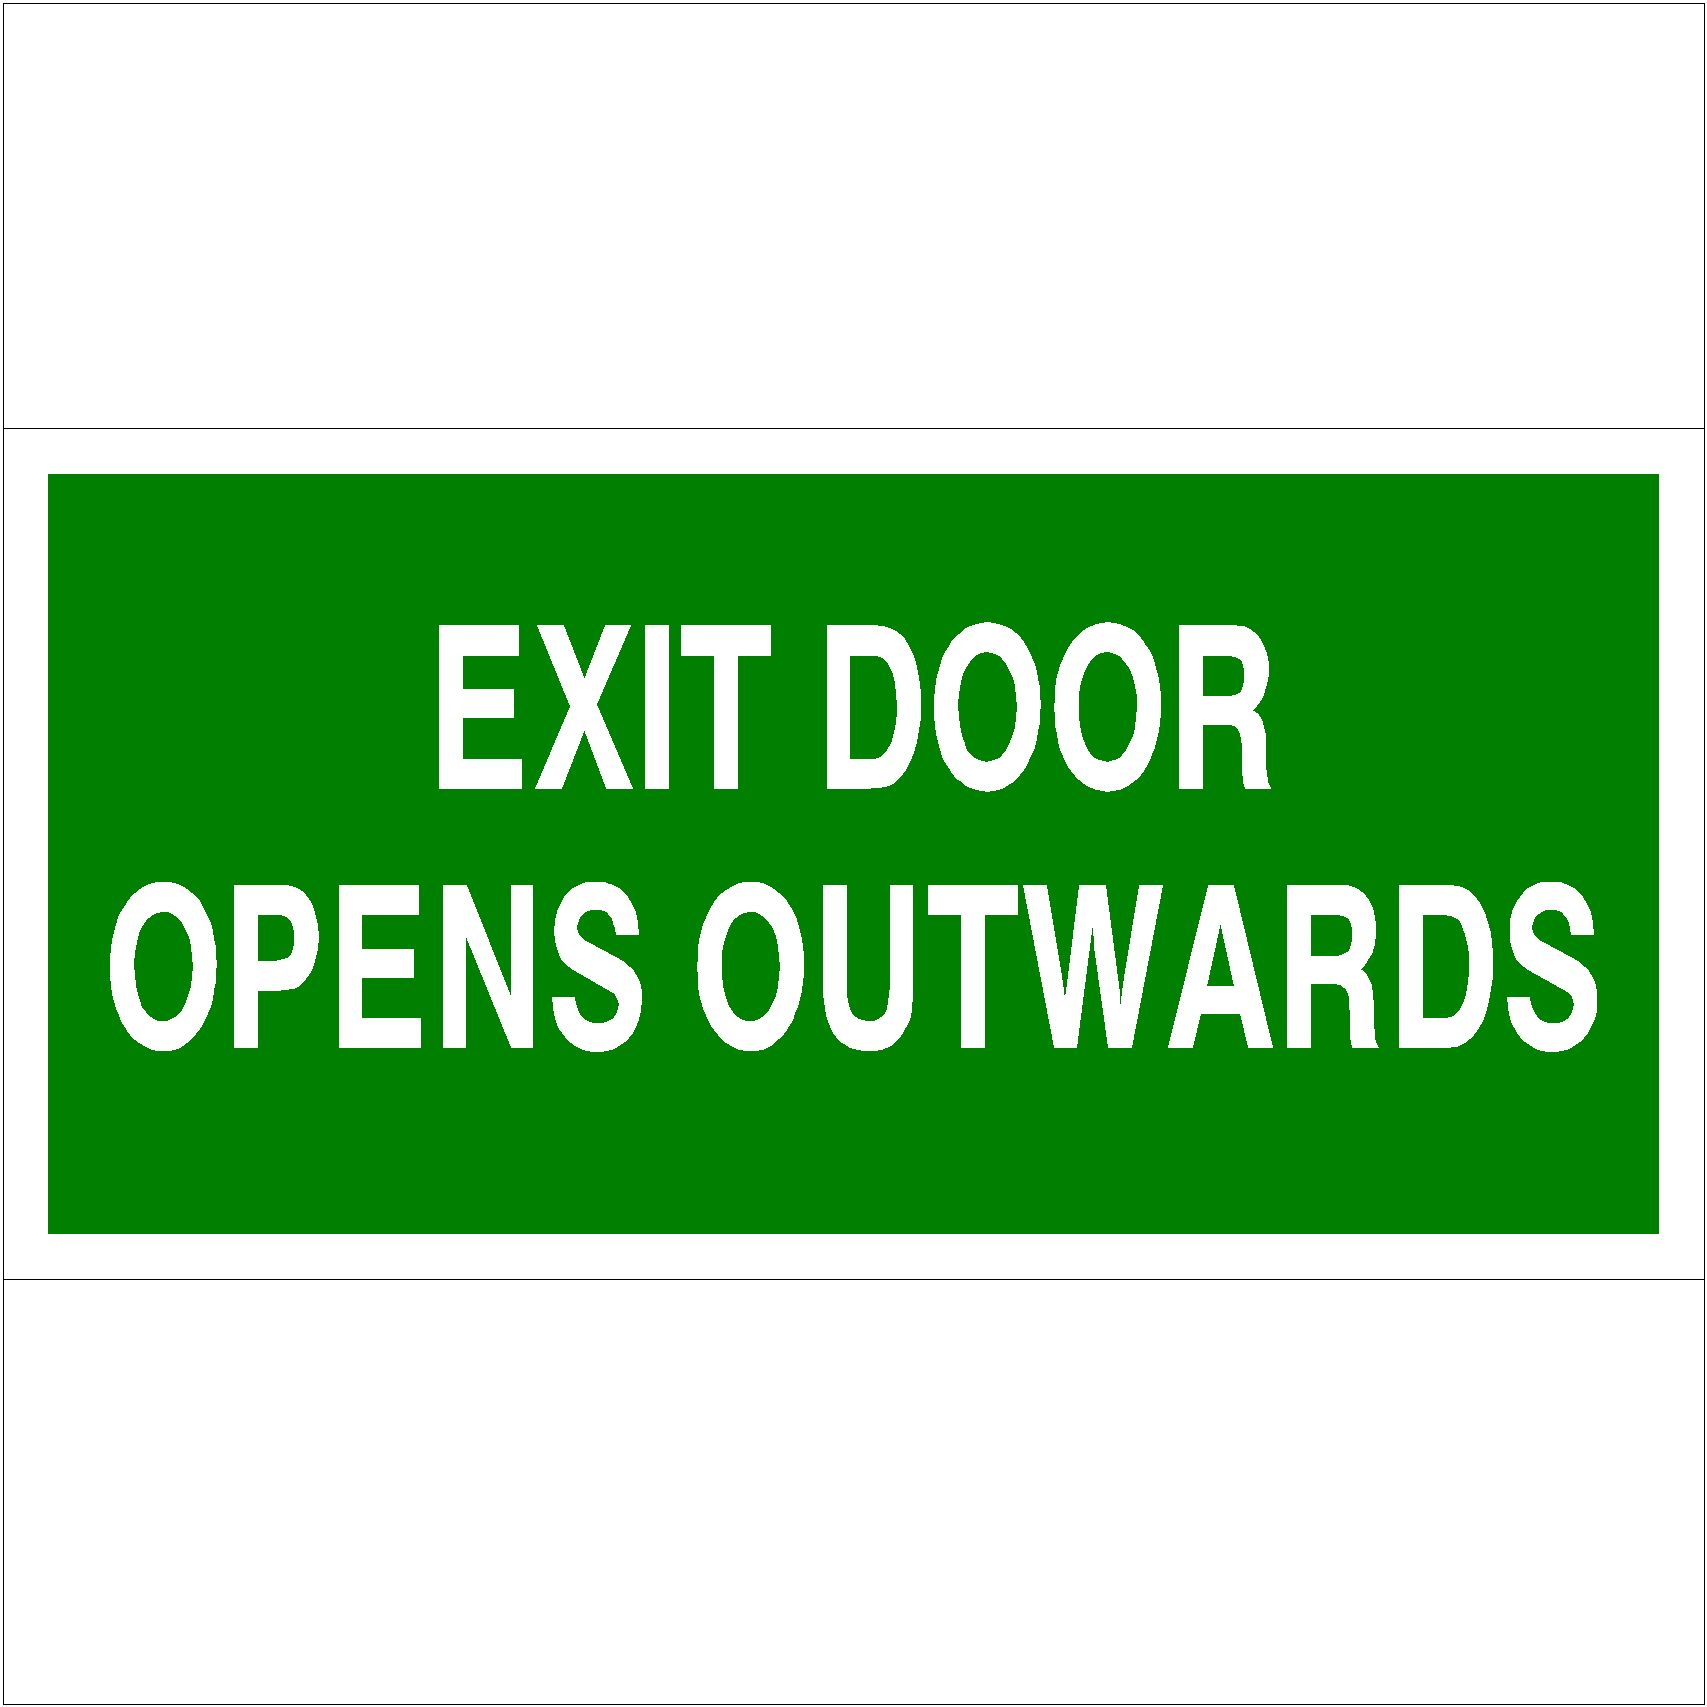 Exit door opens outwards